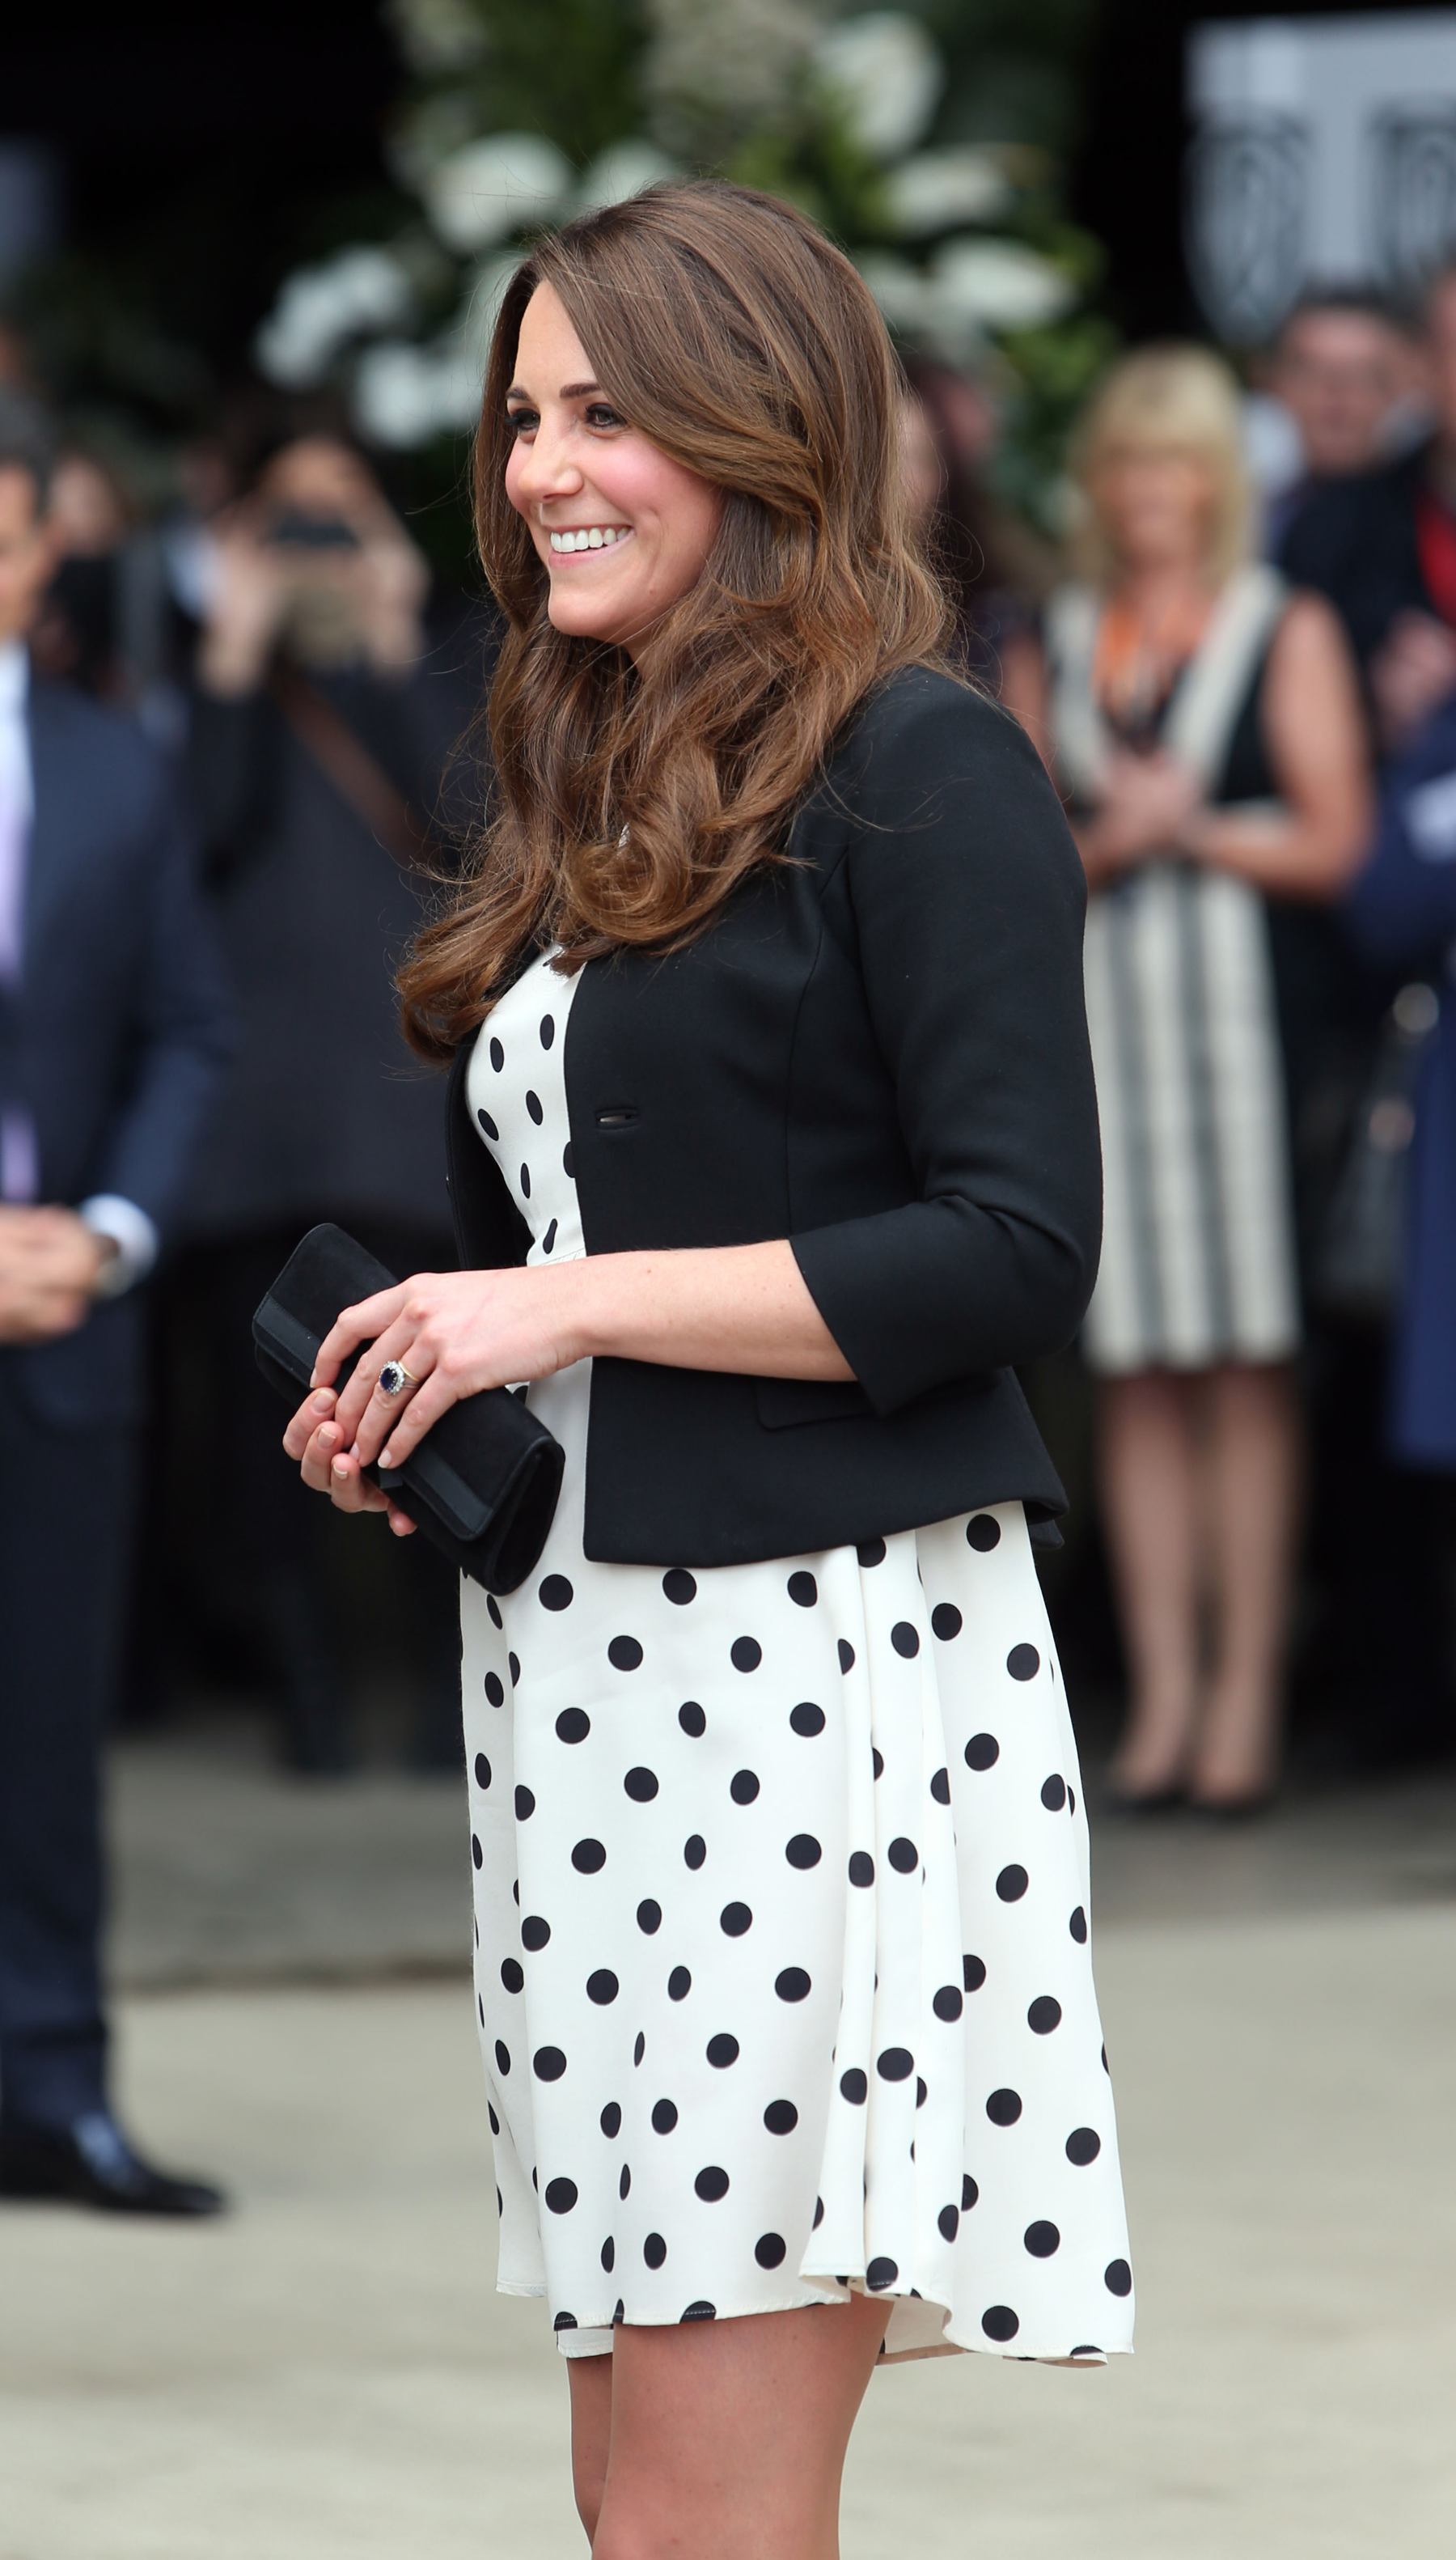 The Duchess of Cambridge arrives for her visit to Warner Bros studios in Leavesden, Herts where the popular Harry Potter movies were produced.